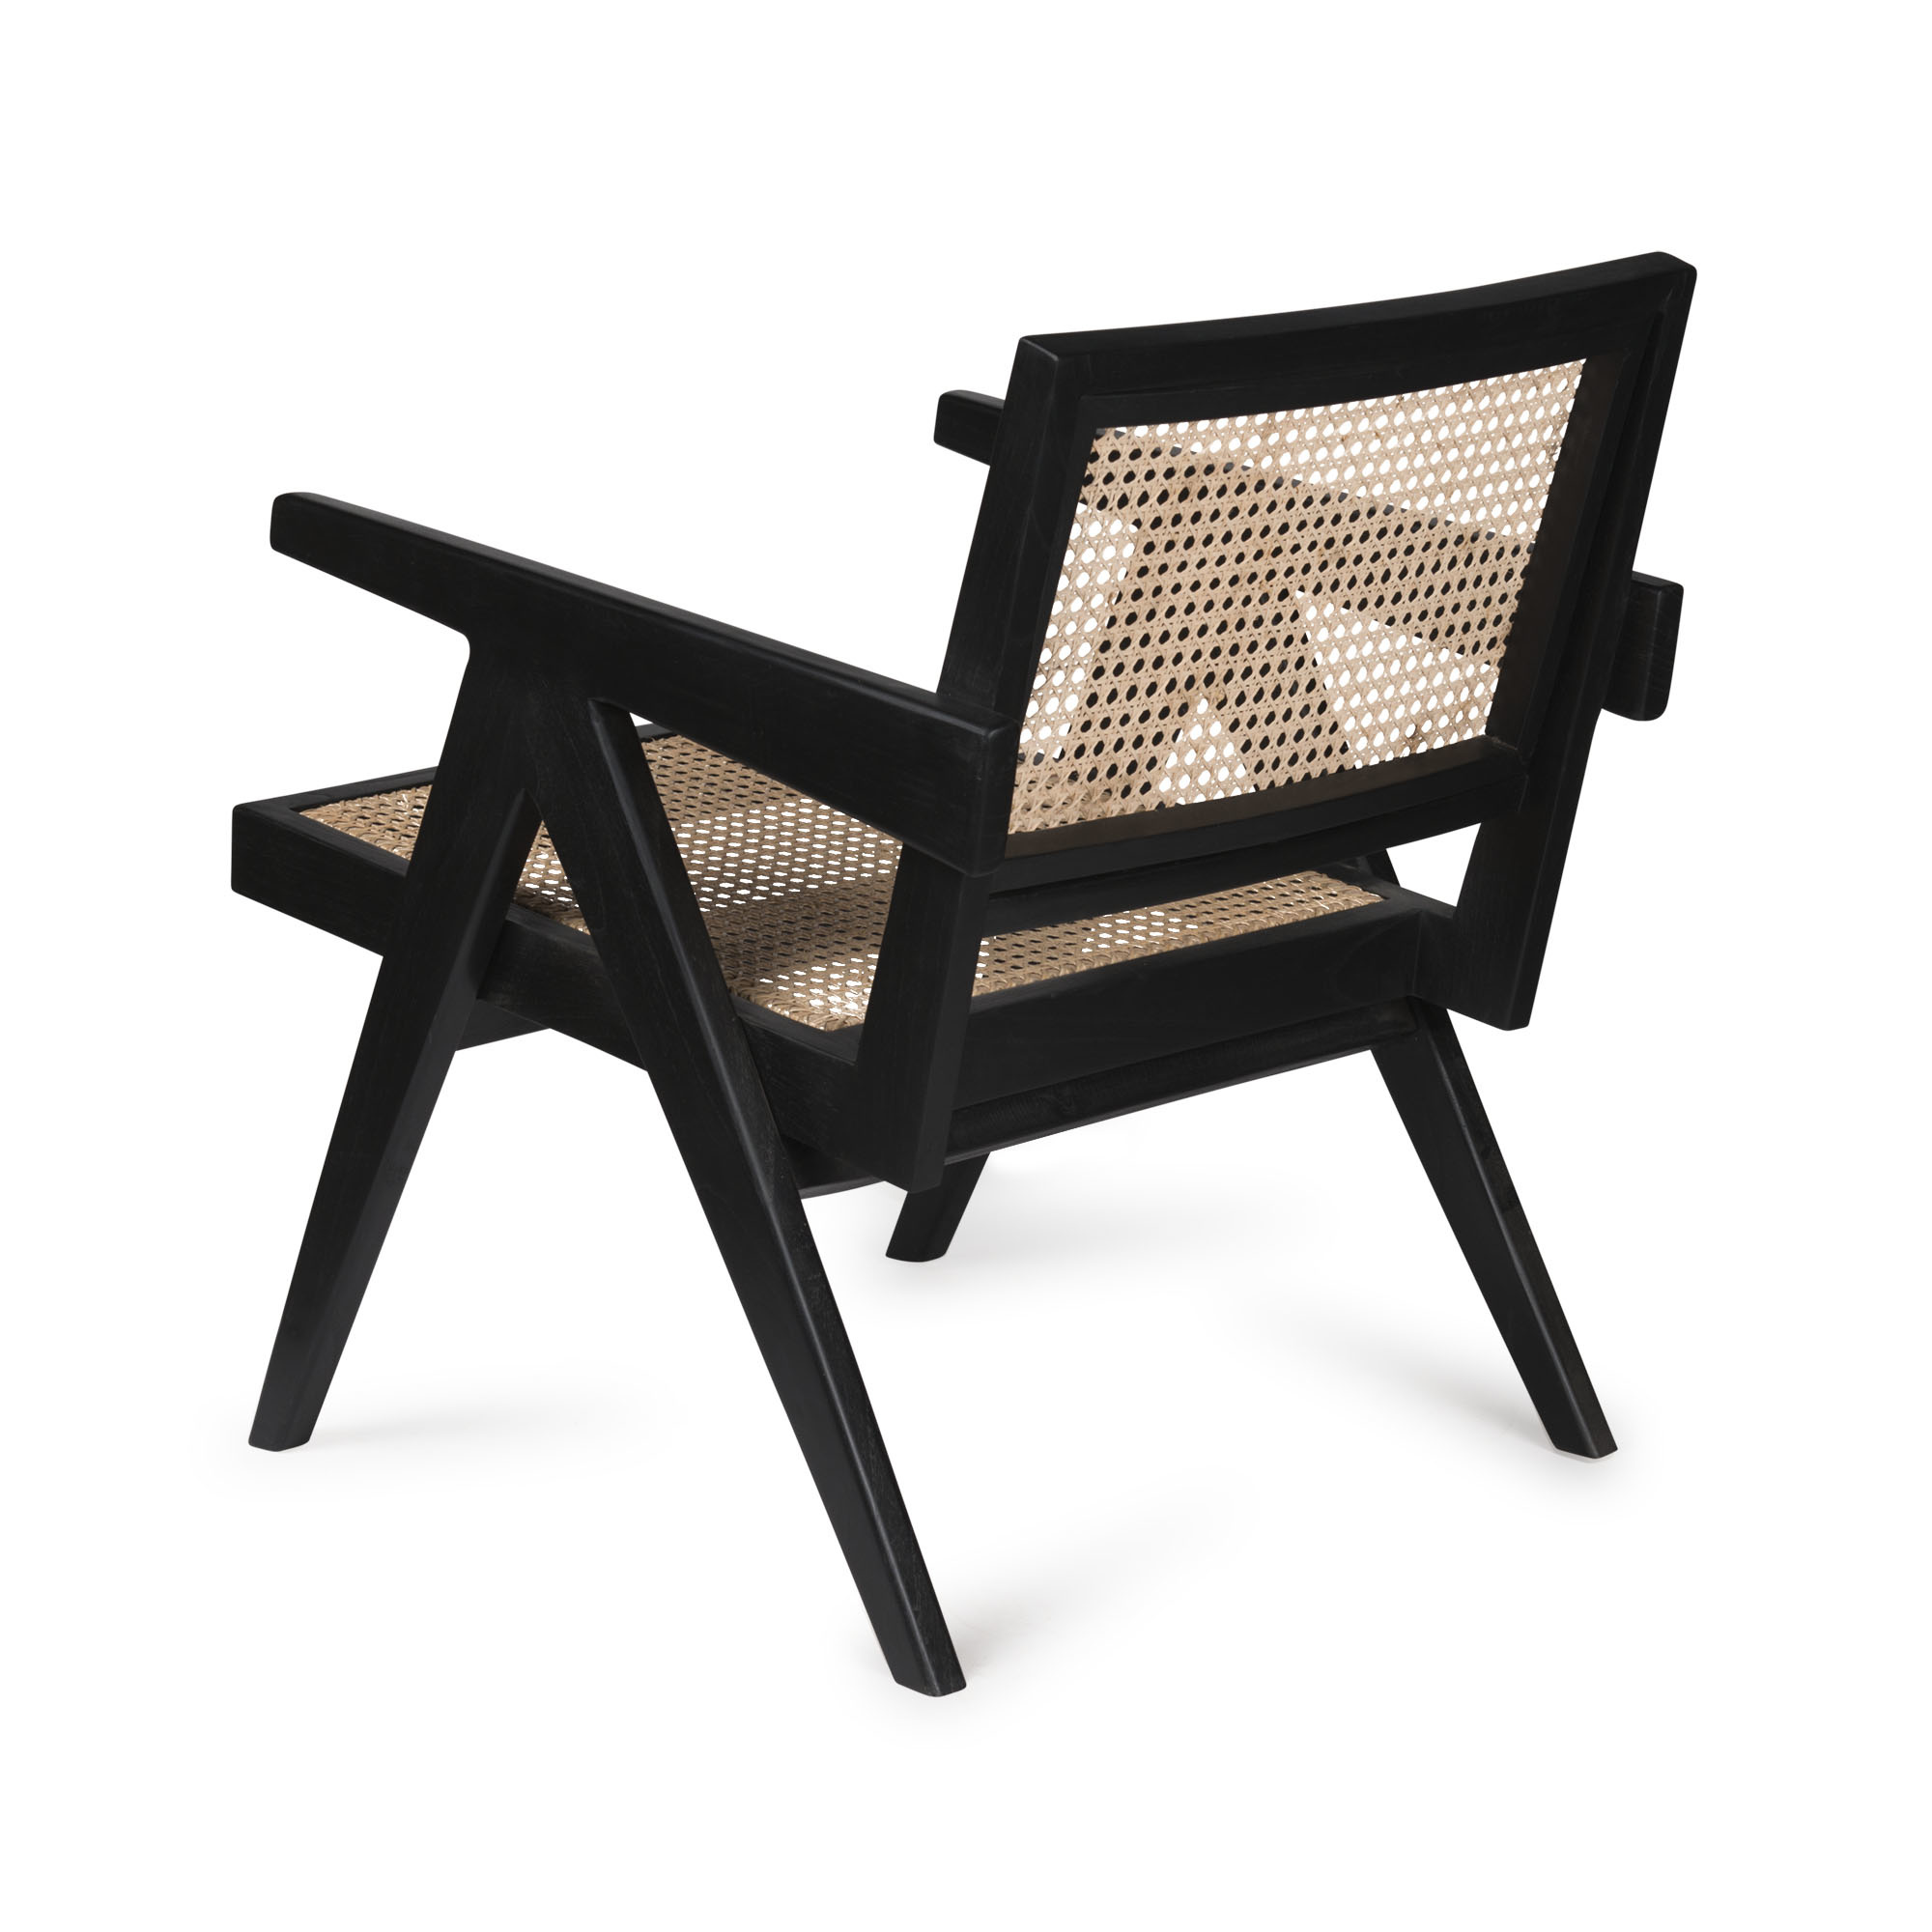 Easy Lounge Chair - Charcoal Black-4